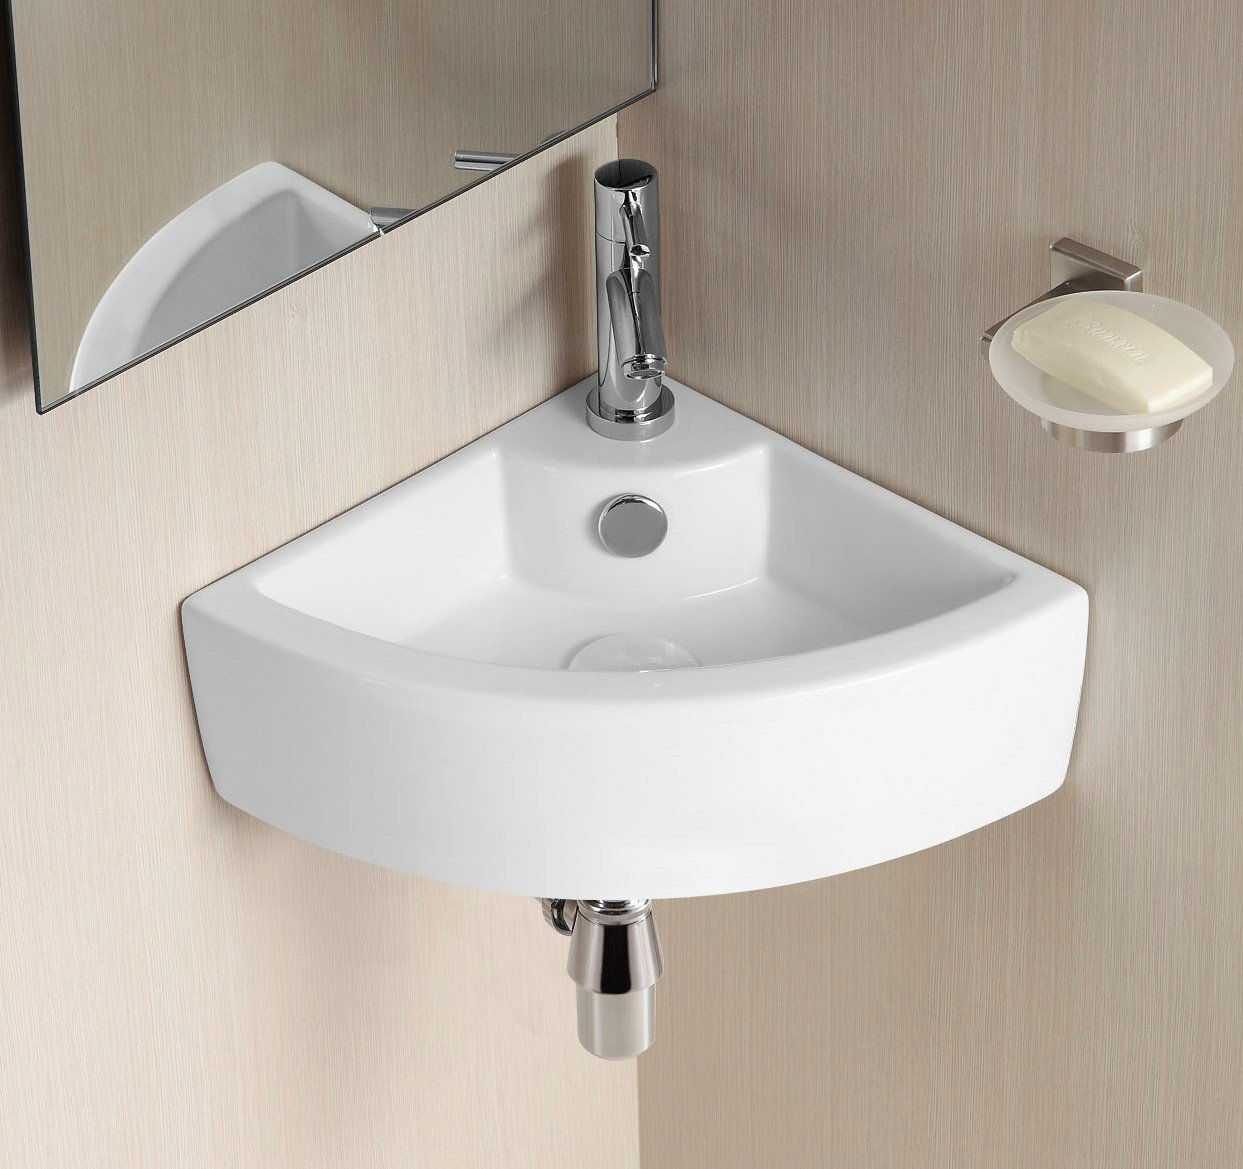 Bathroom wash basin home design ideas and pictures for Bathroom wash basin designs india